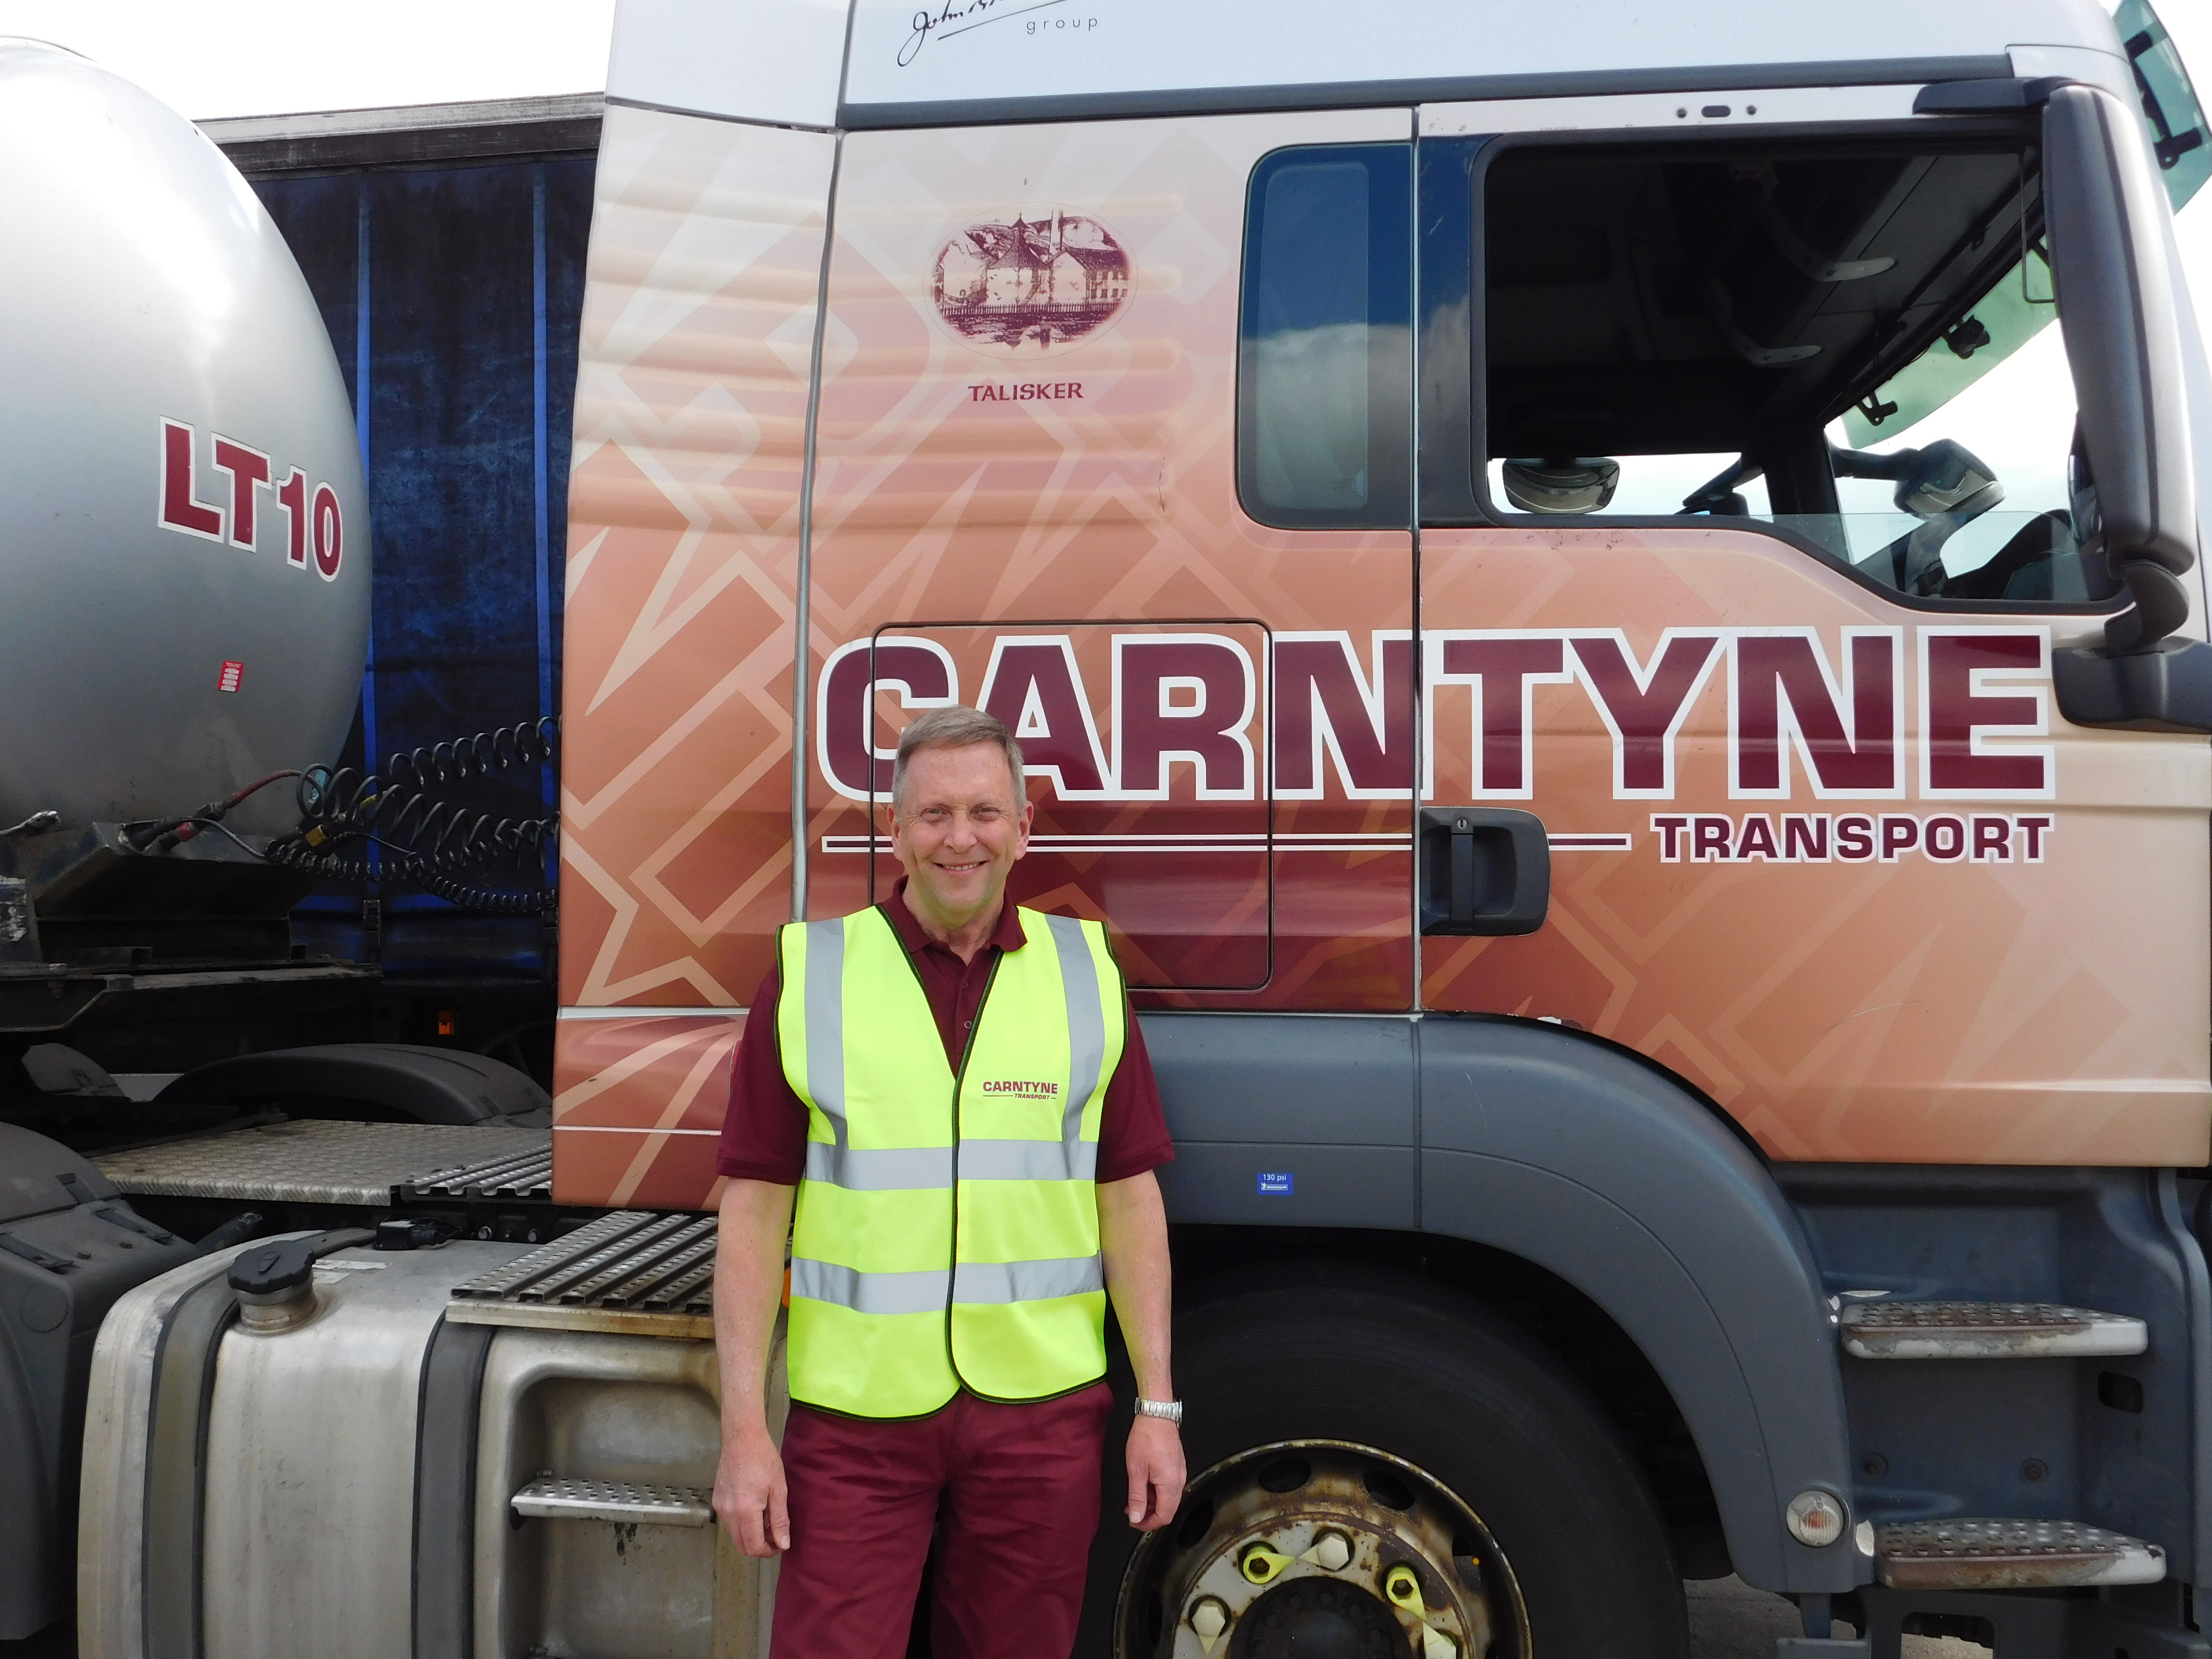 A Day in the Life of a Carntyne Driver